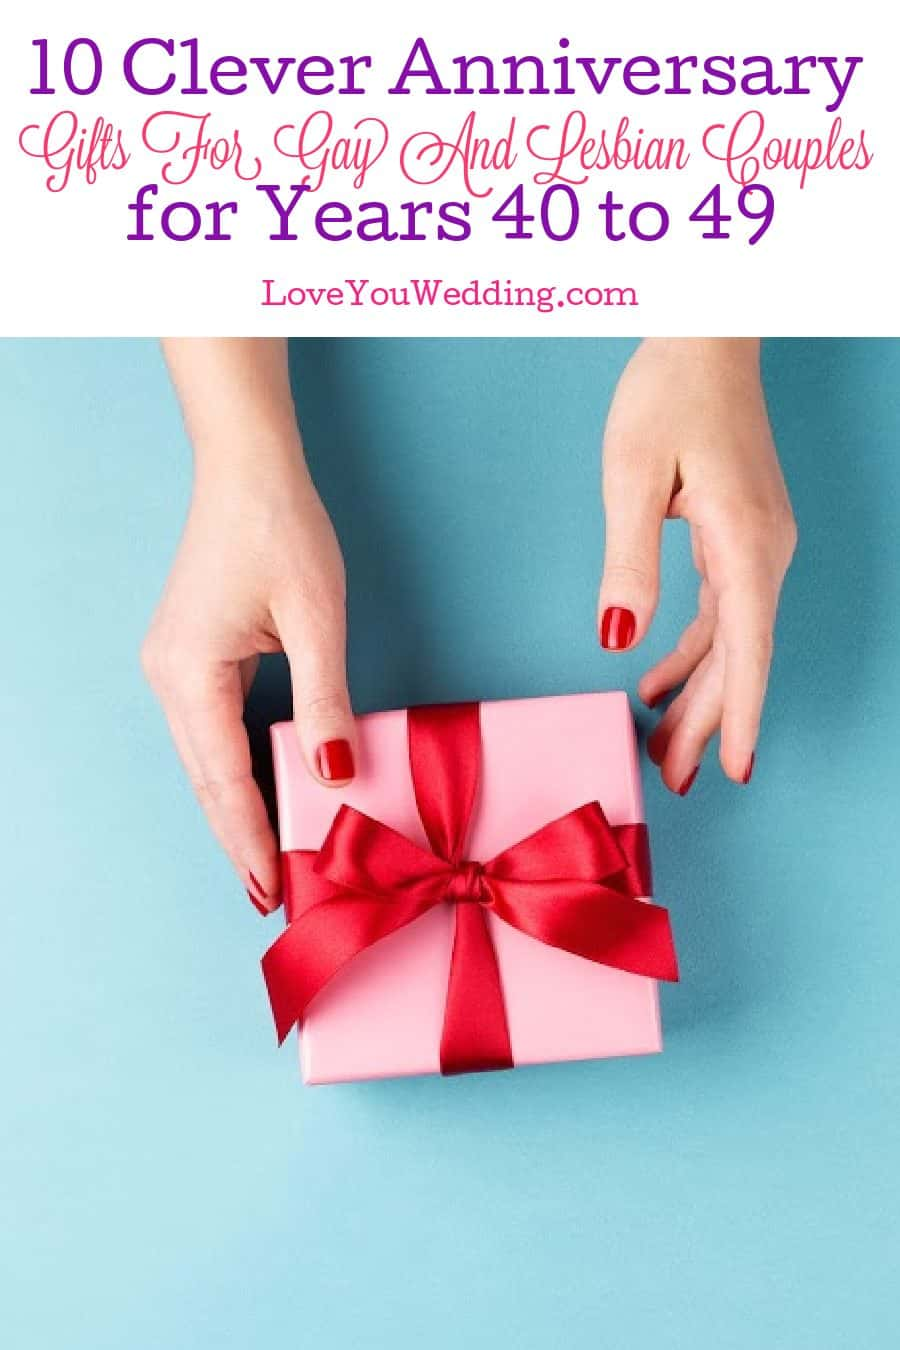 Need some incredible anniversary gifts for gay and lesbian couples for the years 40 to 49? Check out ten clever ideas that we know they'll love!